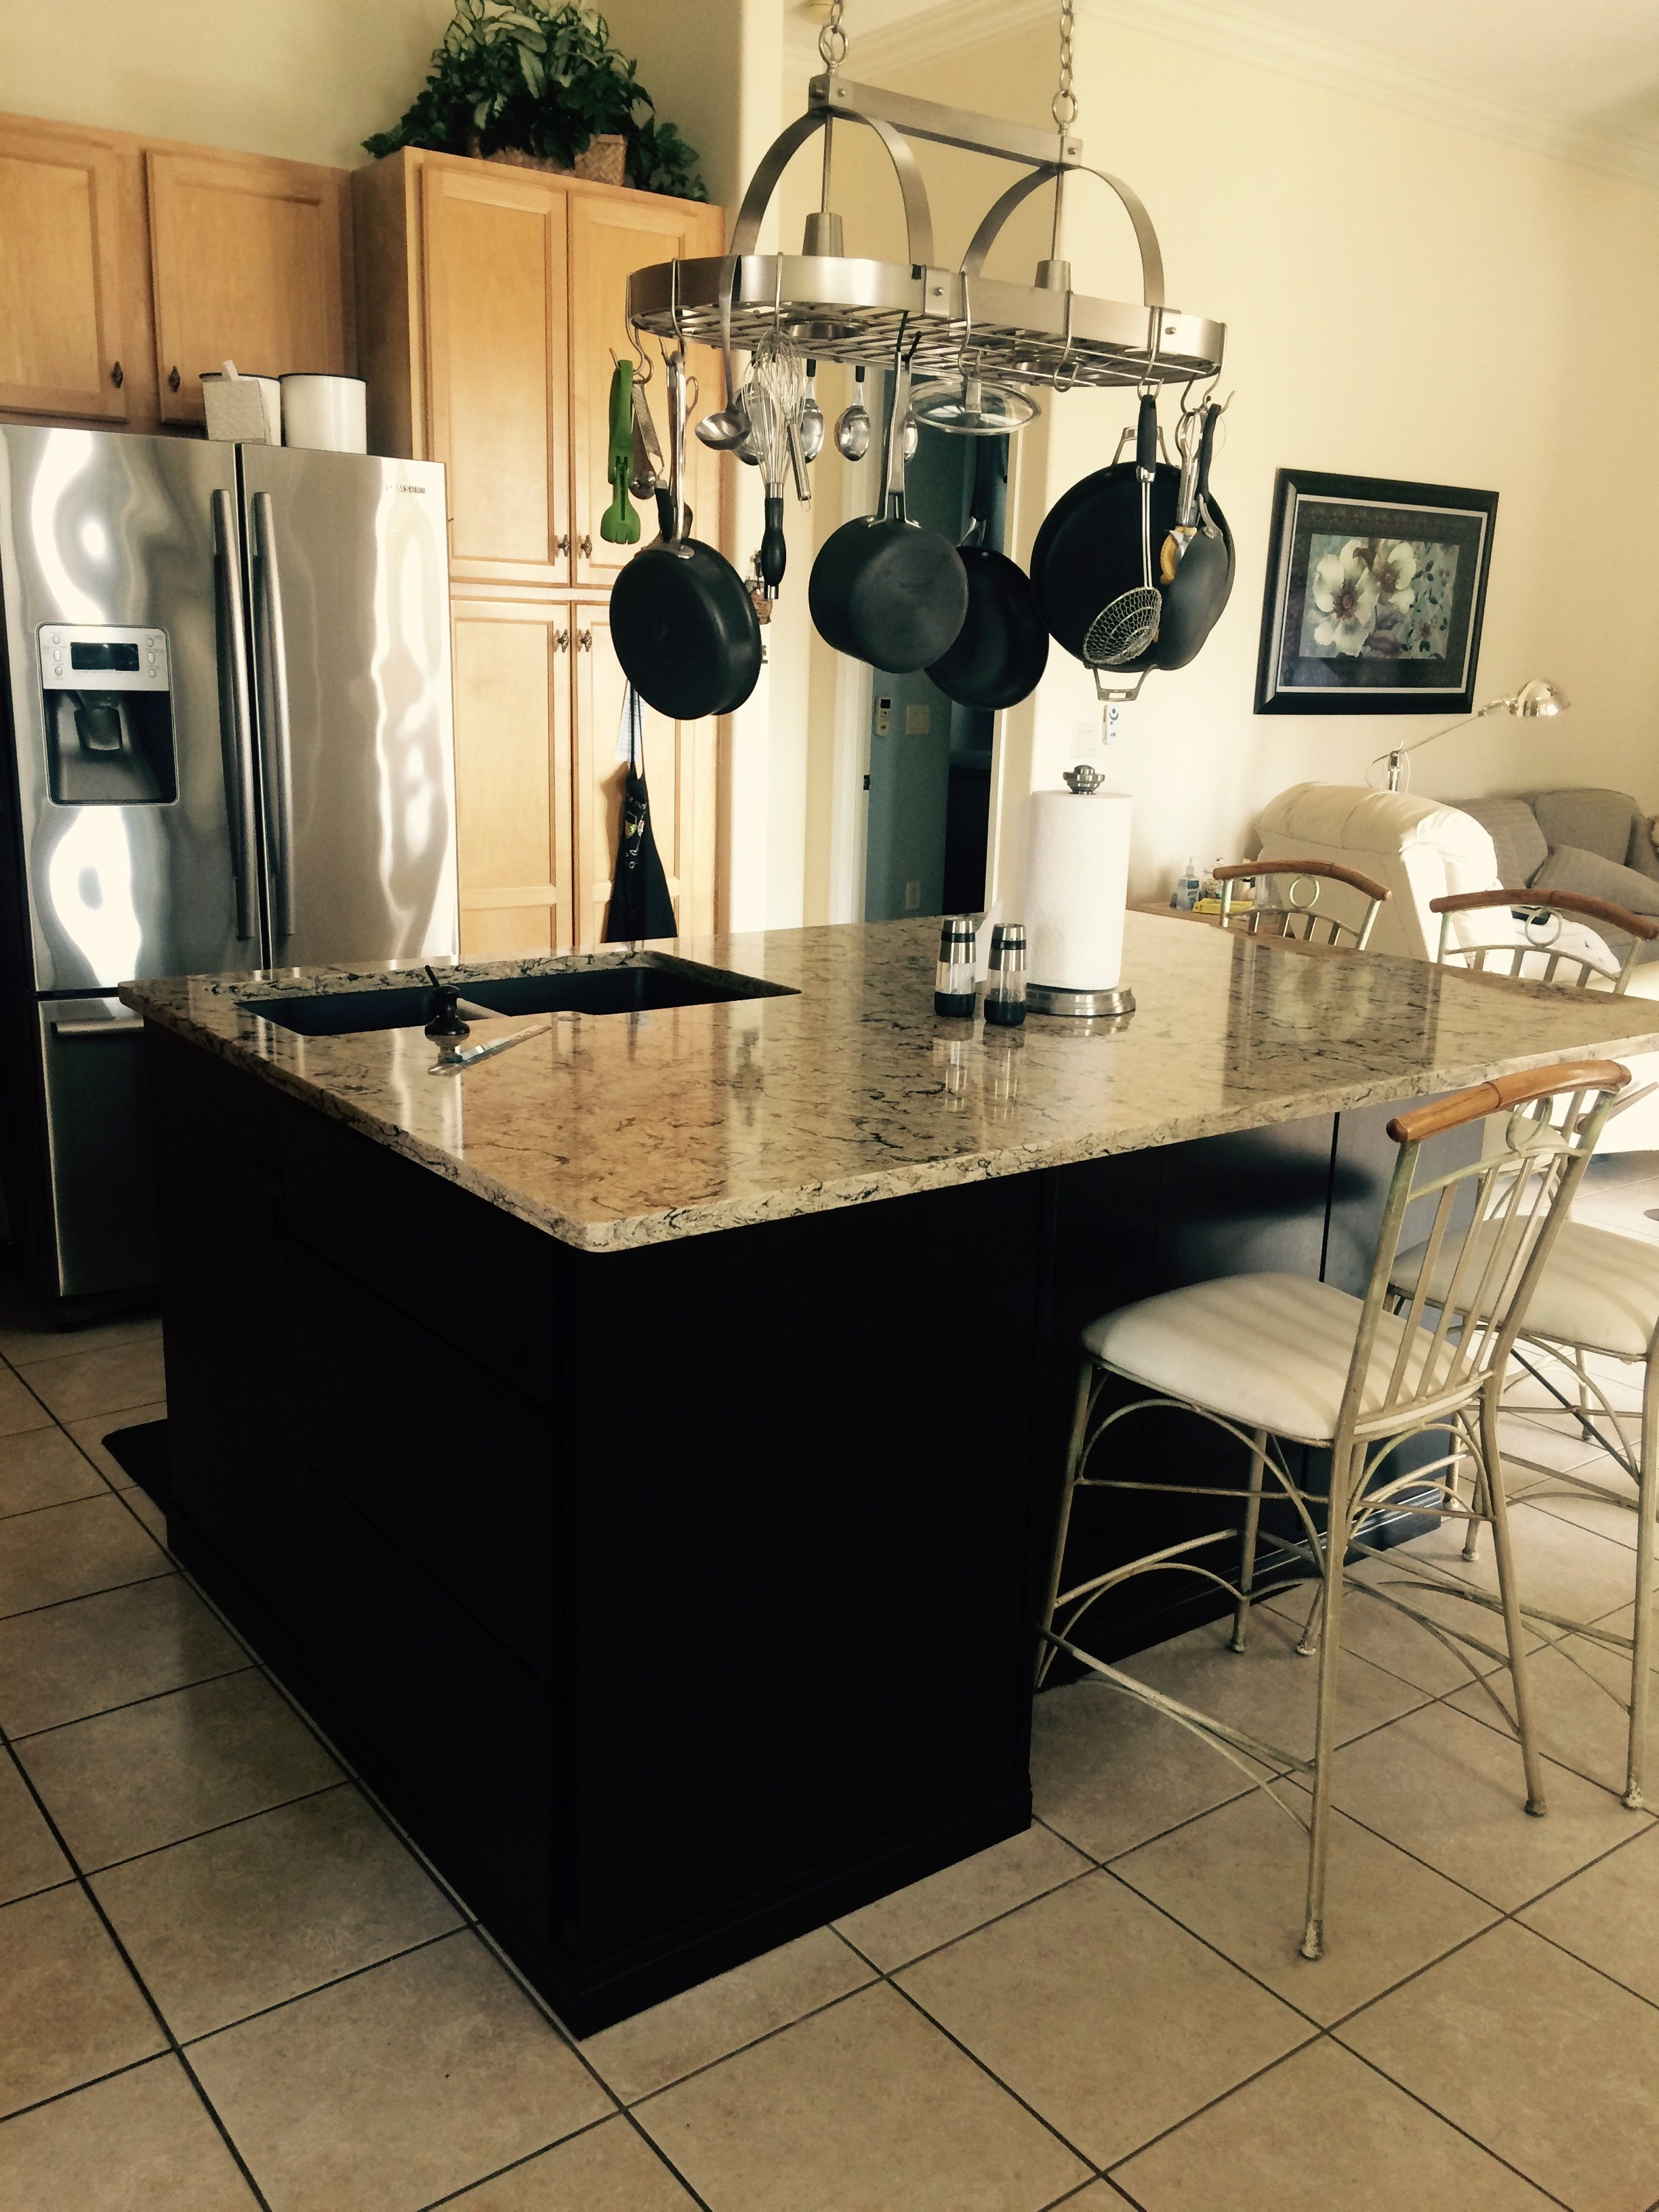 Cambria Bradshaw Was Used for This Kitchen with Cabinets By